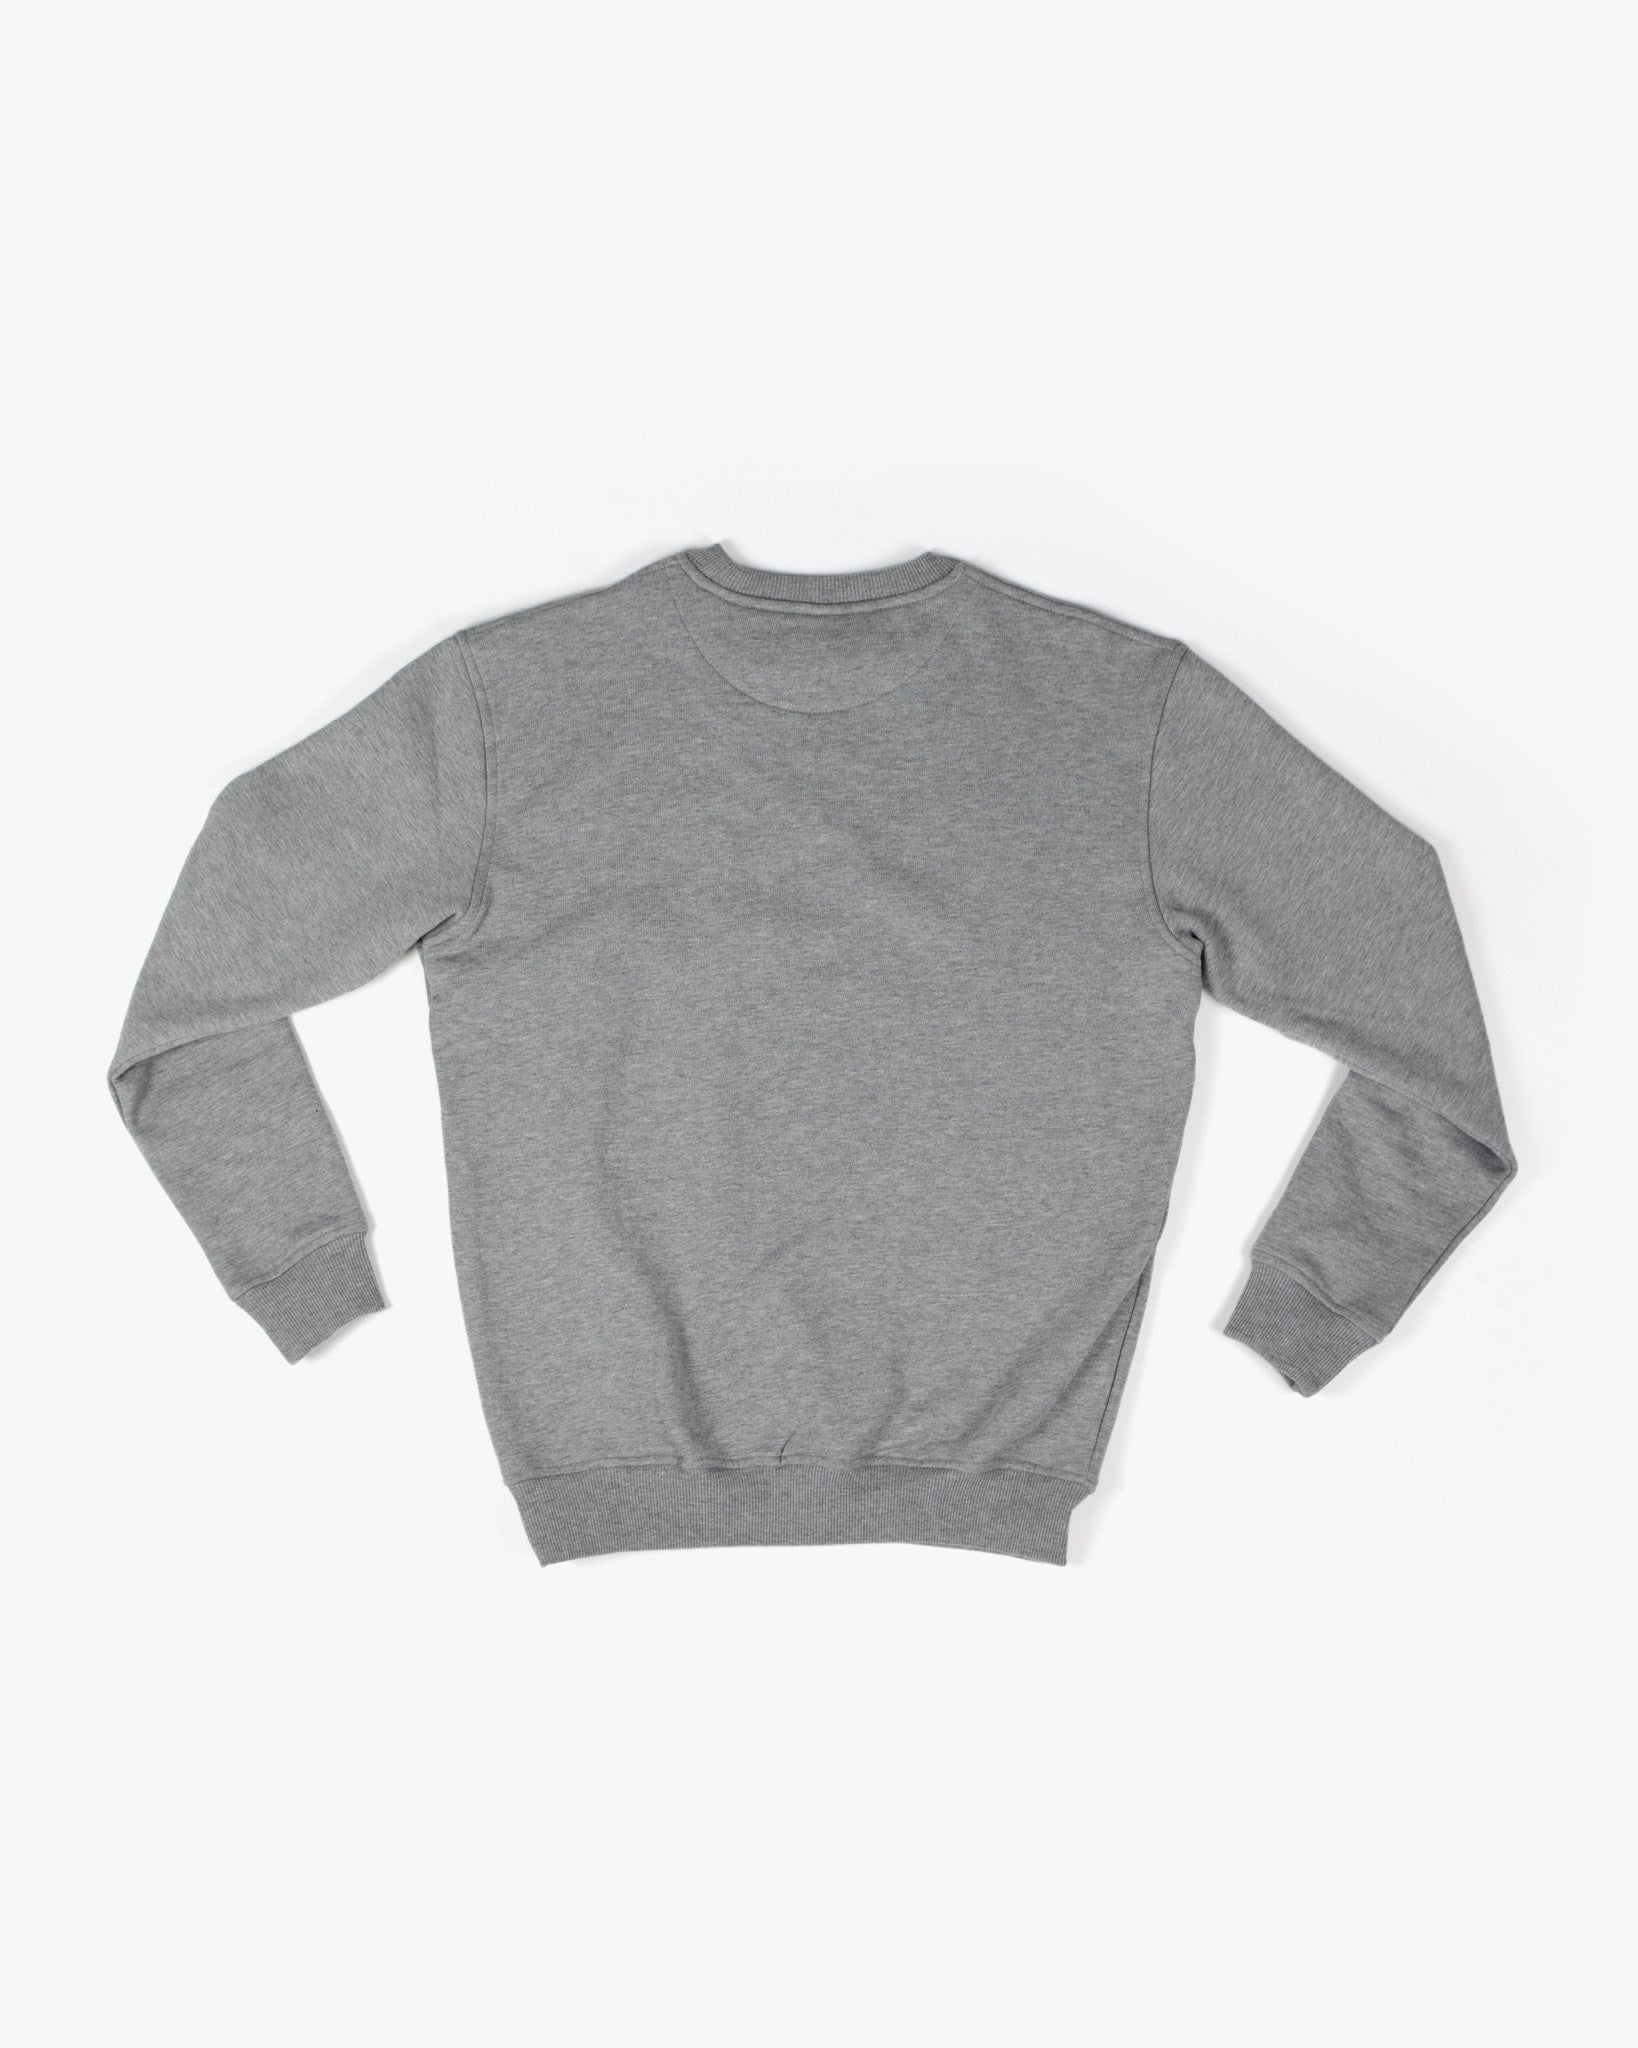 Techno sweater by RAVE Clothing with Rave logo